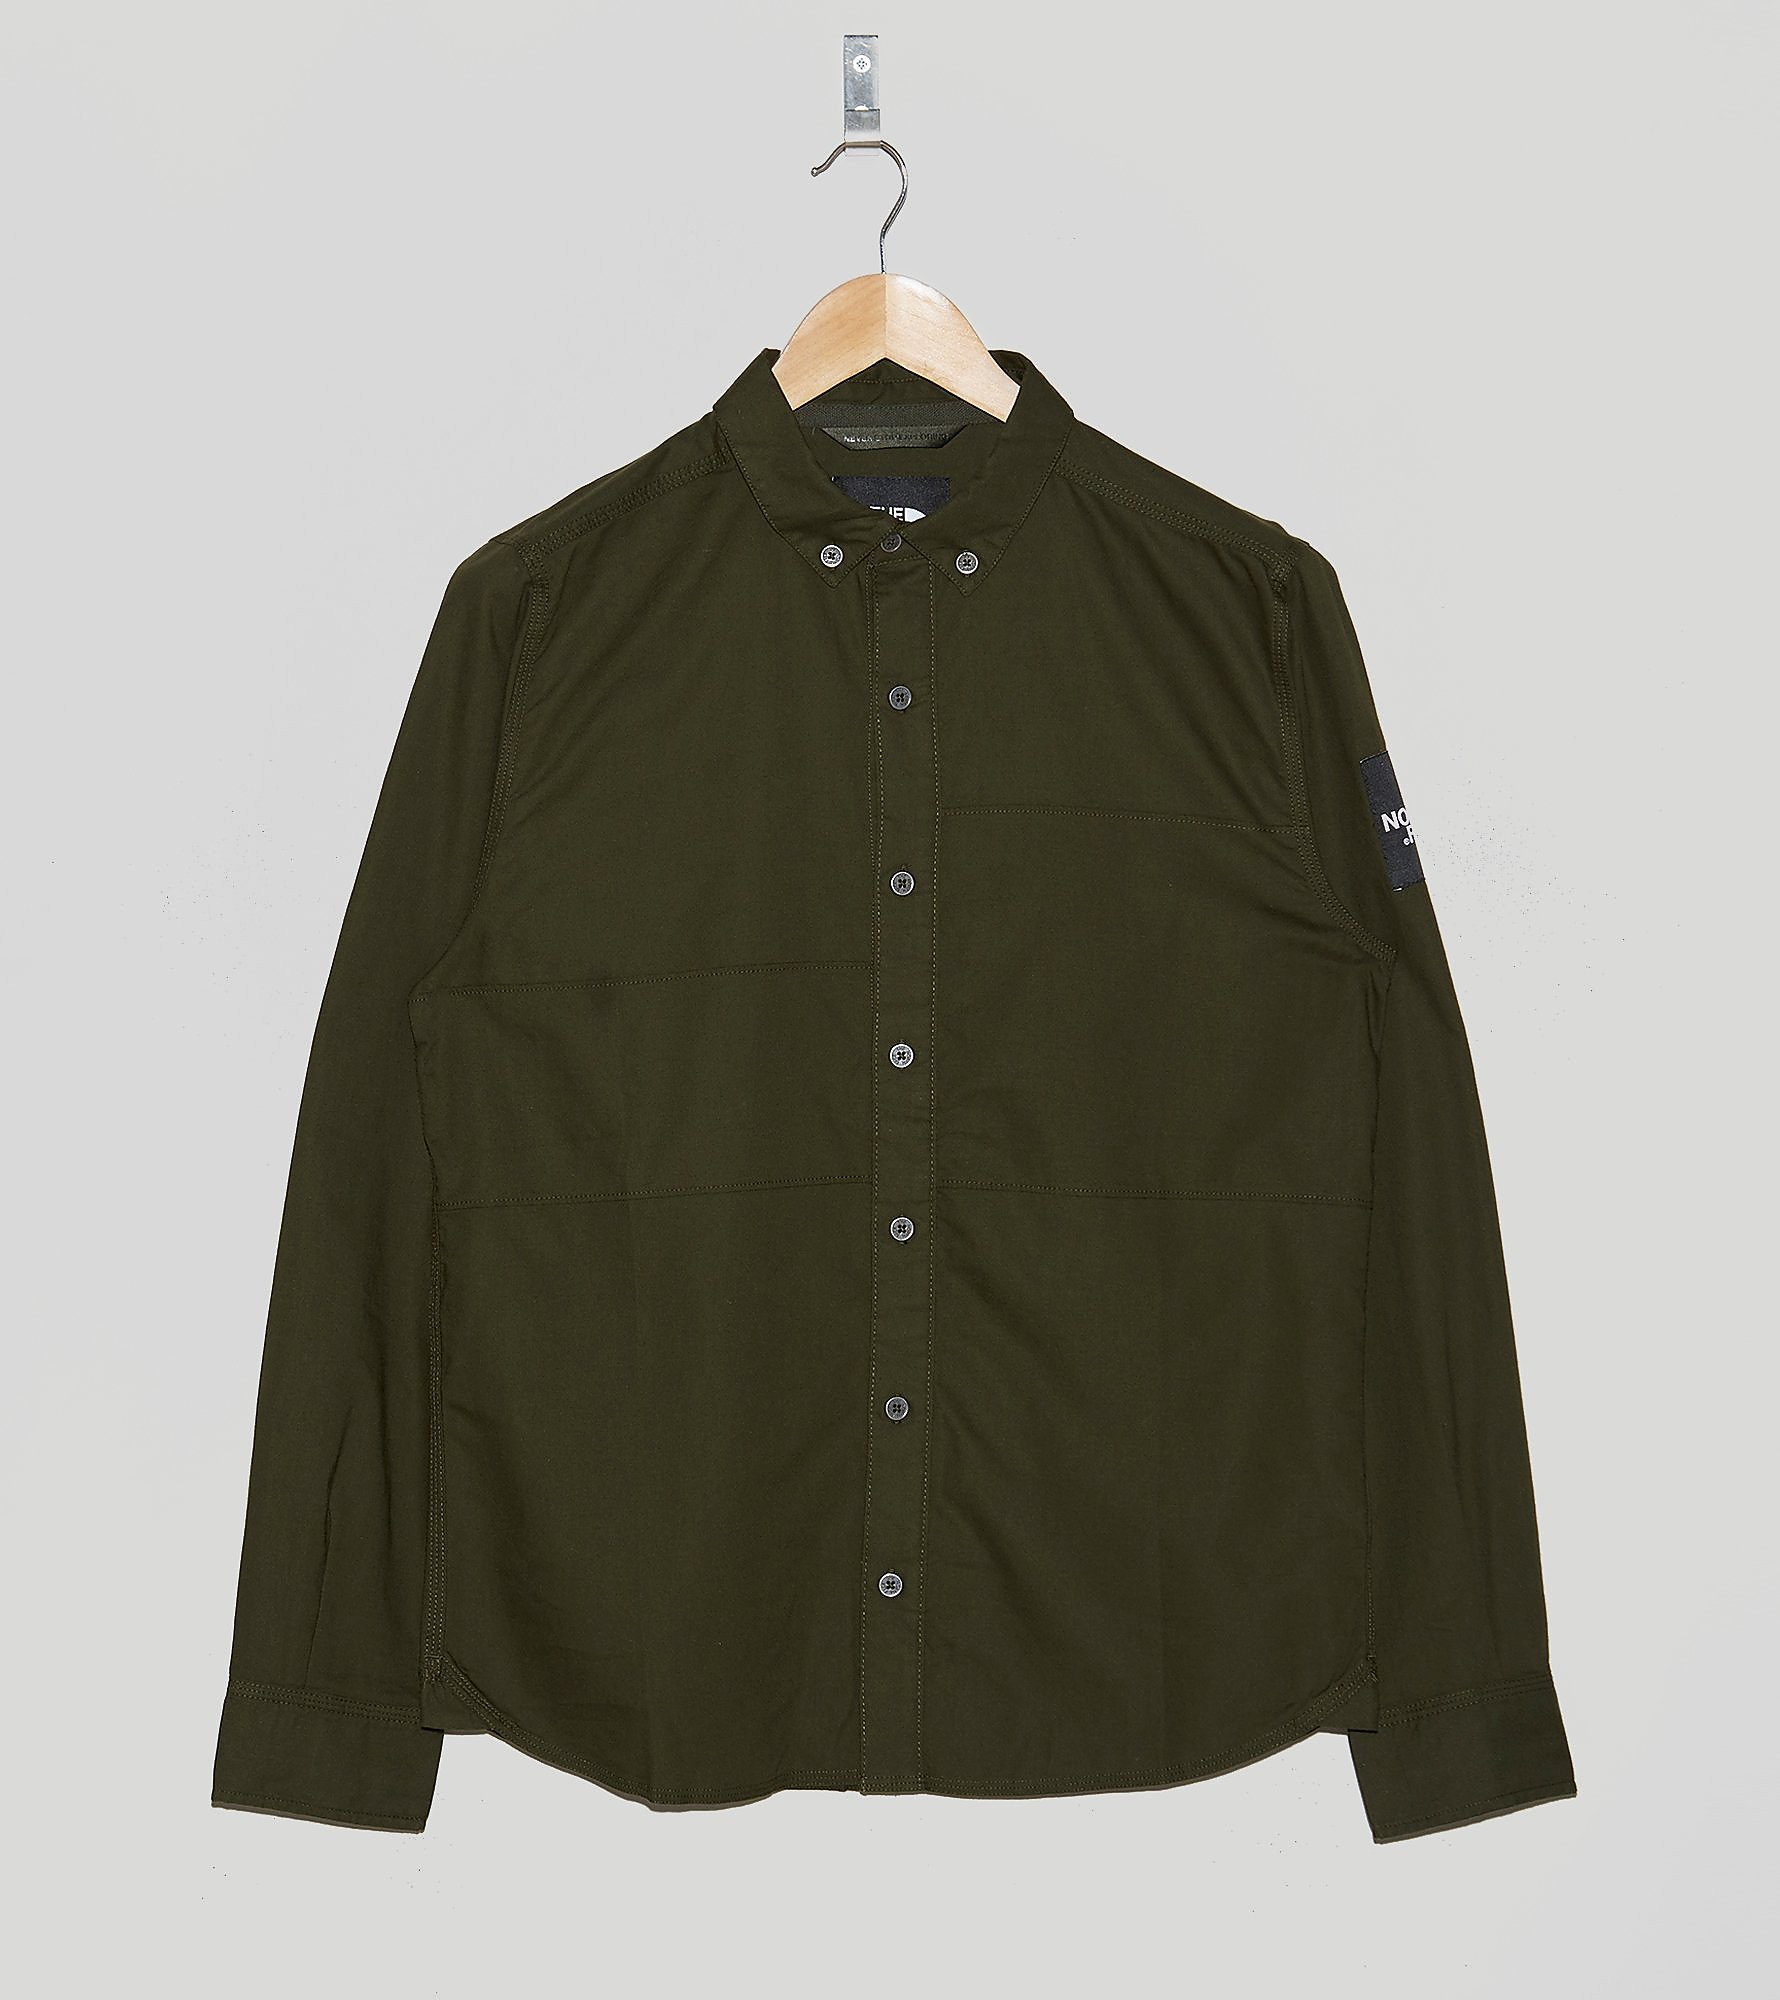 The North Face Black Label Denali Shirt